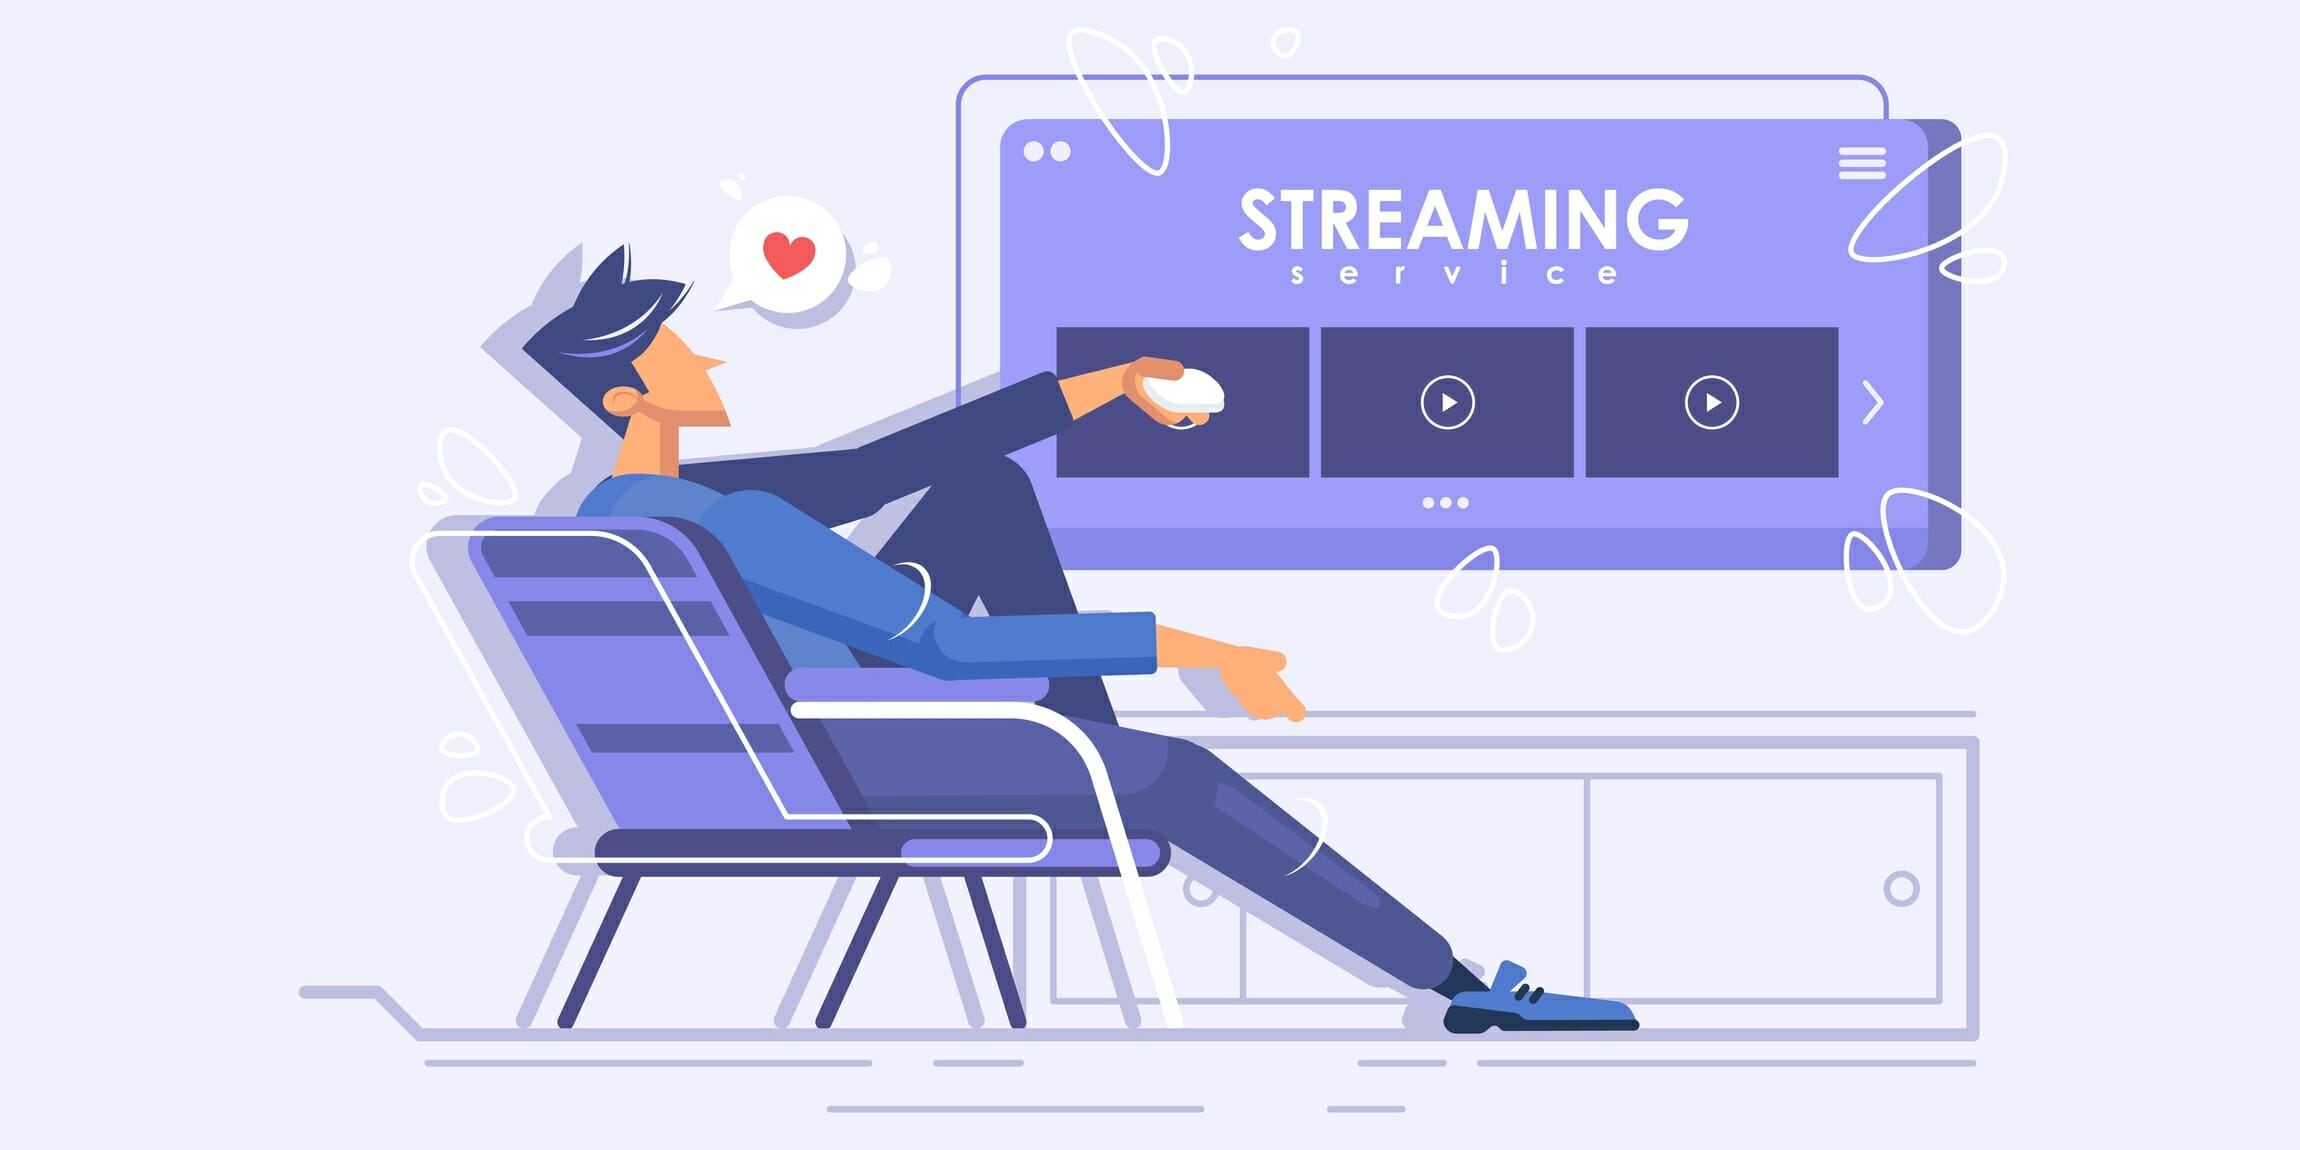 the demand for free streaming services is higher than ever